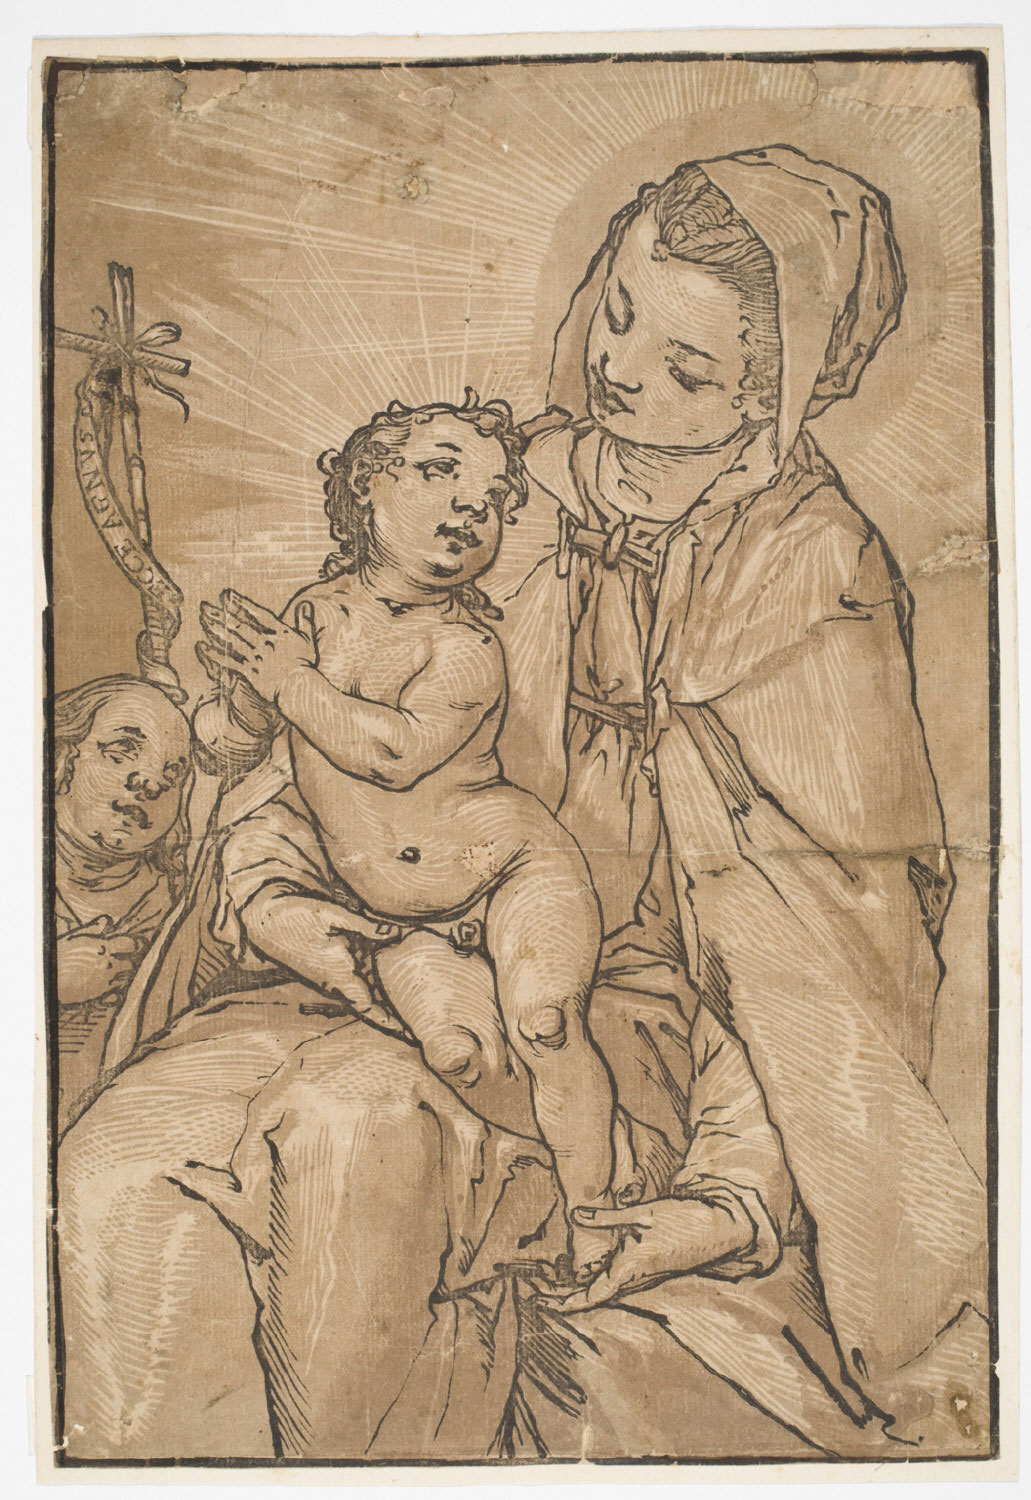 Madonna and Child with Young St. John